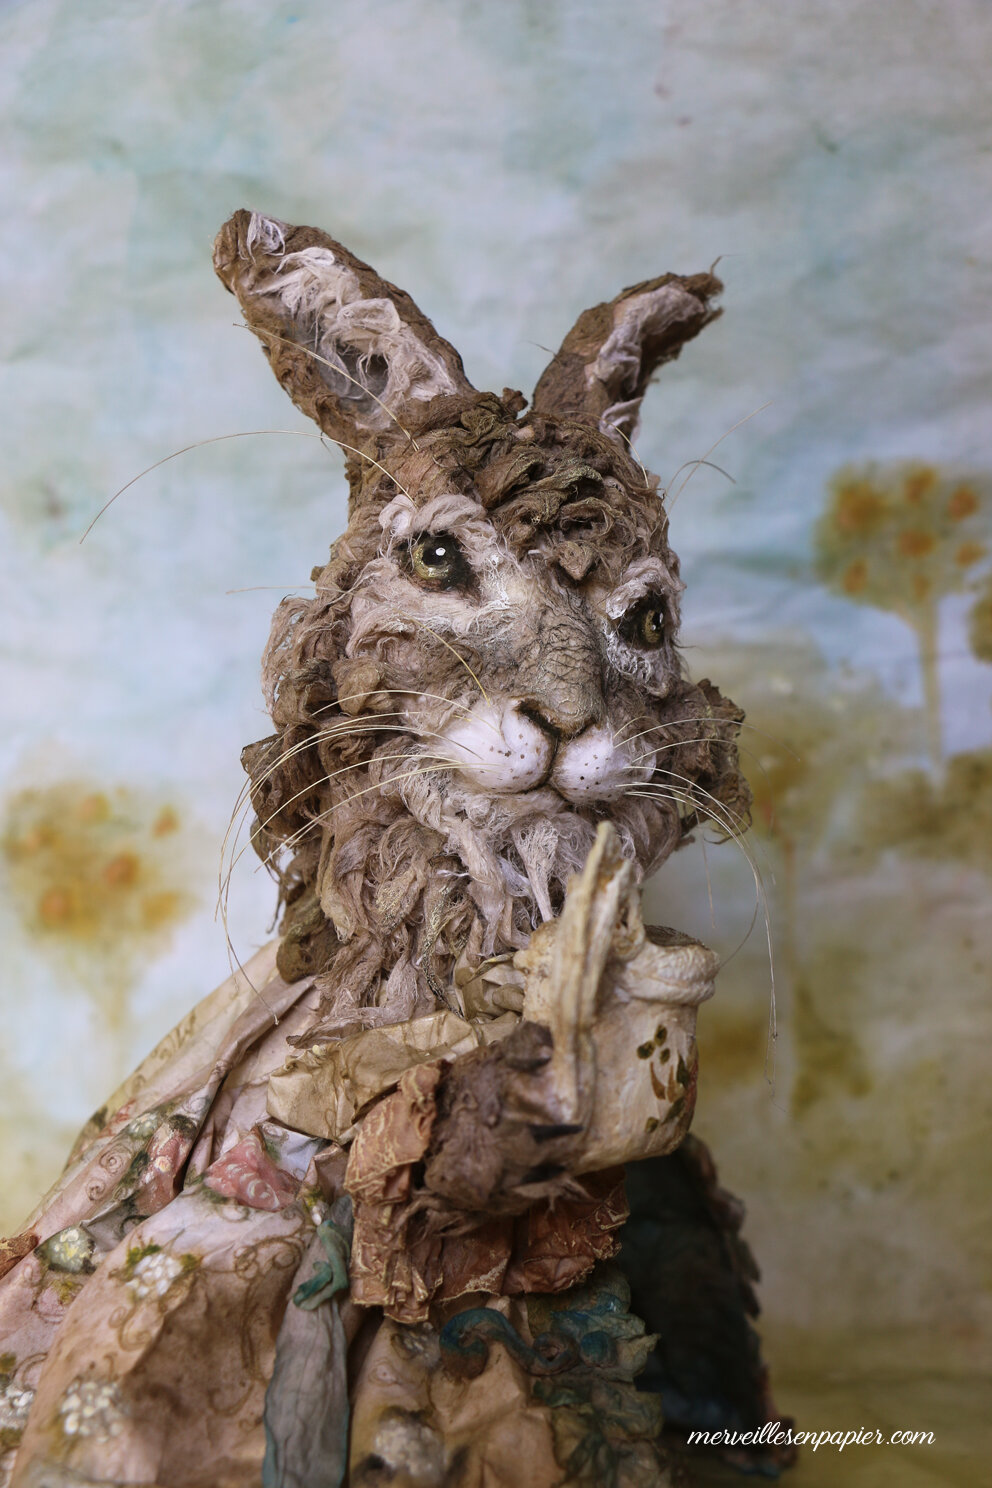 The-hare-and-the-tortoise-82.jpg